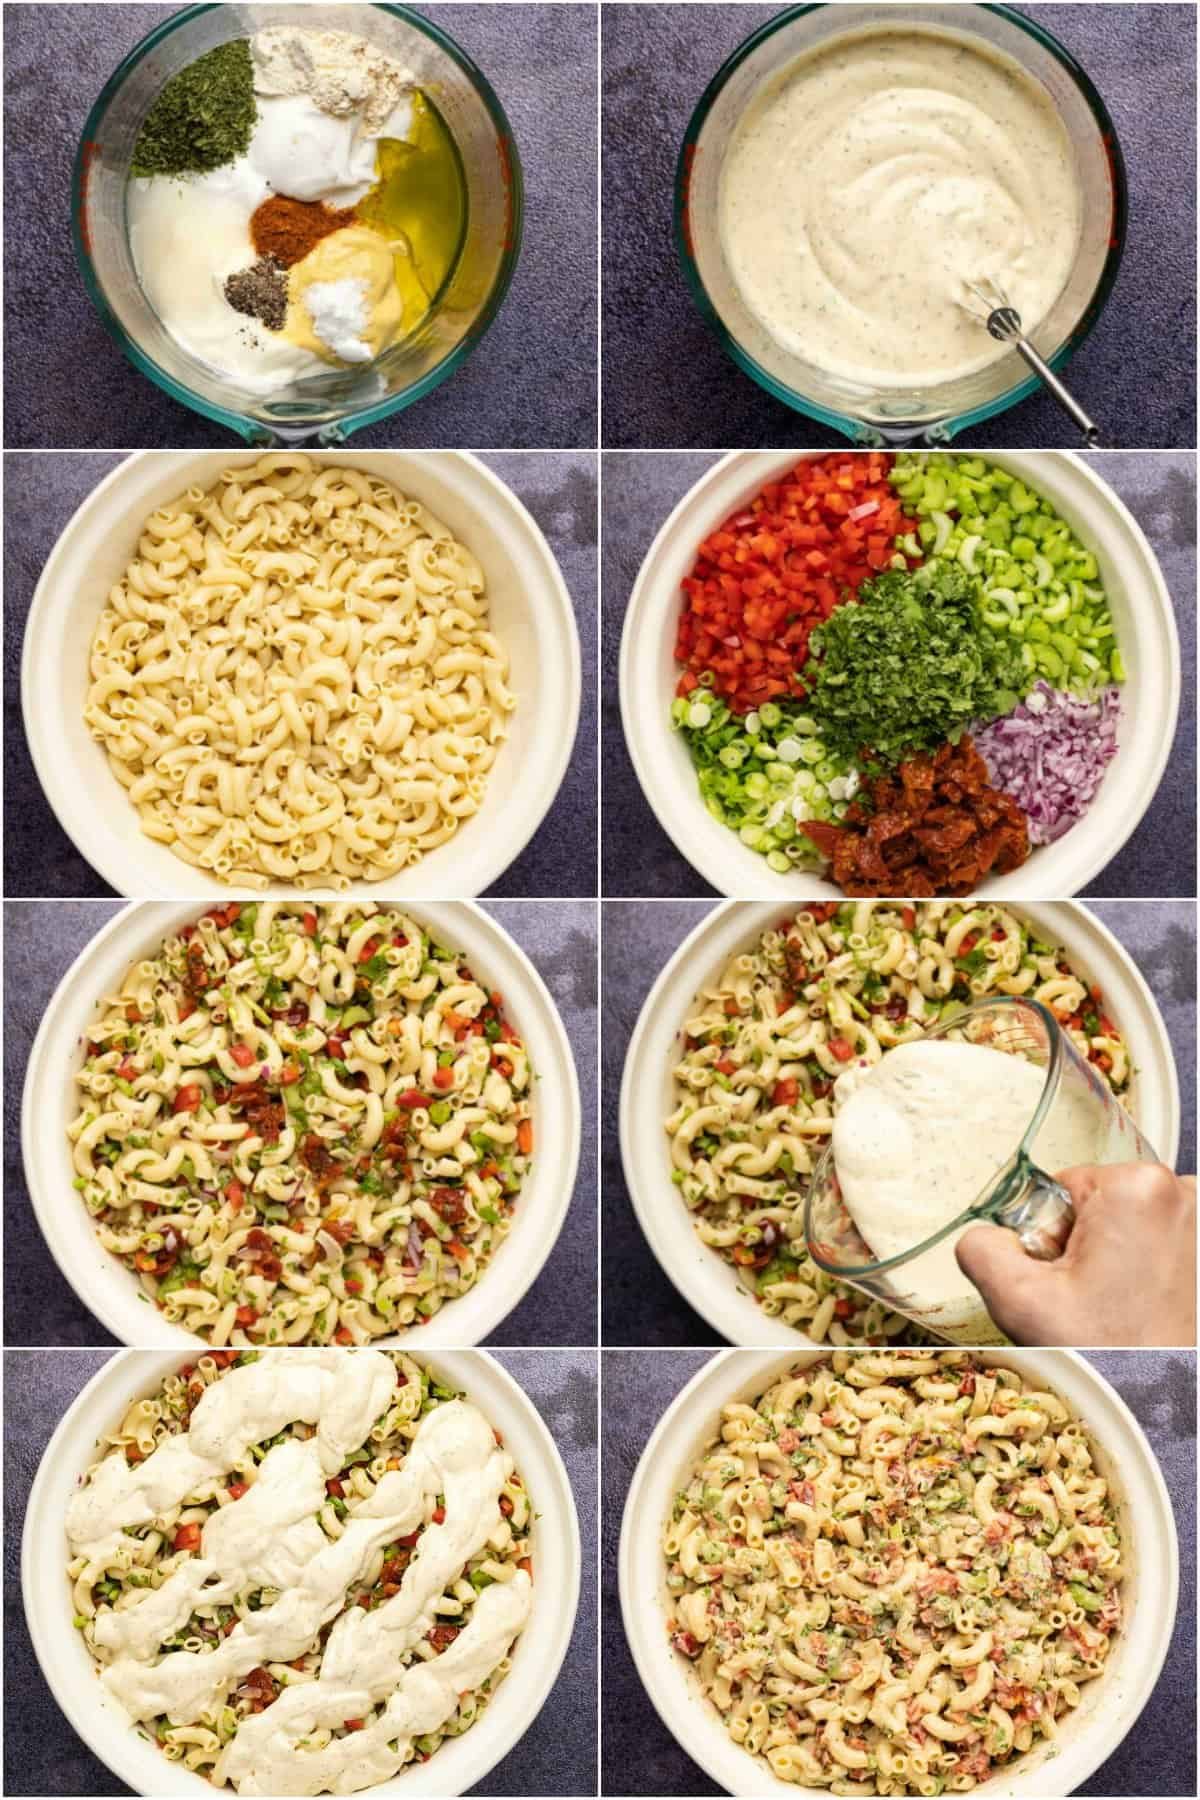 Step by step process photo collage of making macaroni salad.